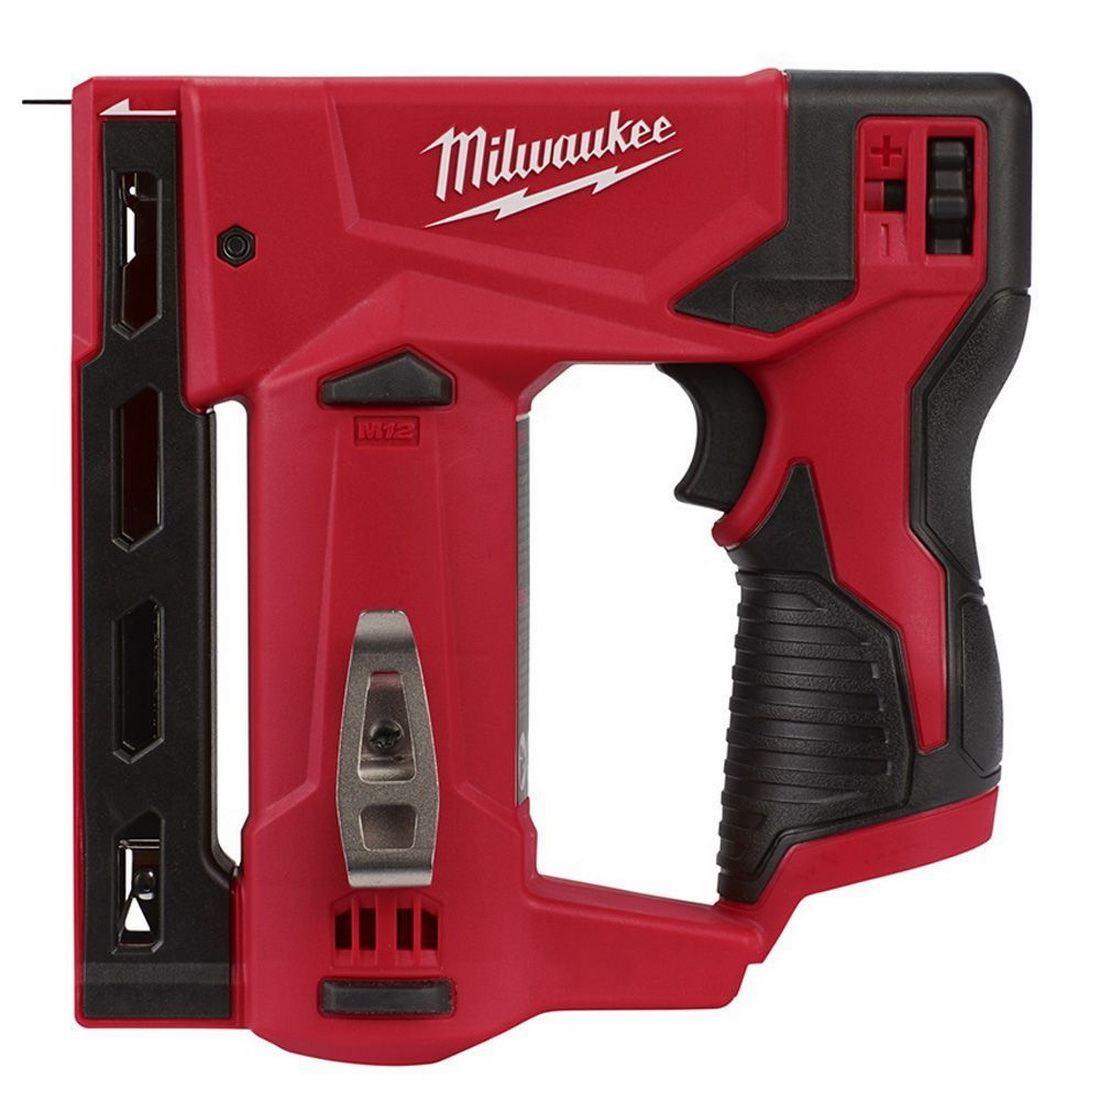 M12 Cordless Crown Stapler 10mm (Tool Only)